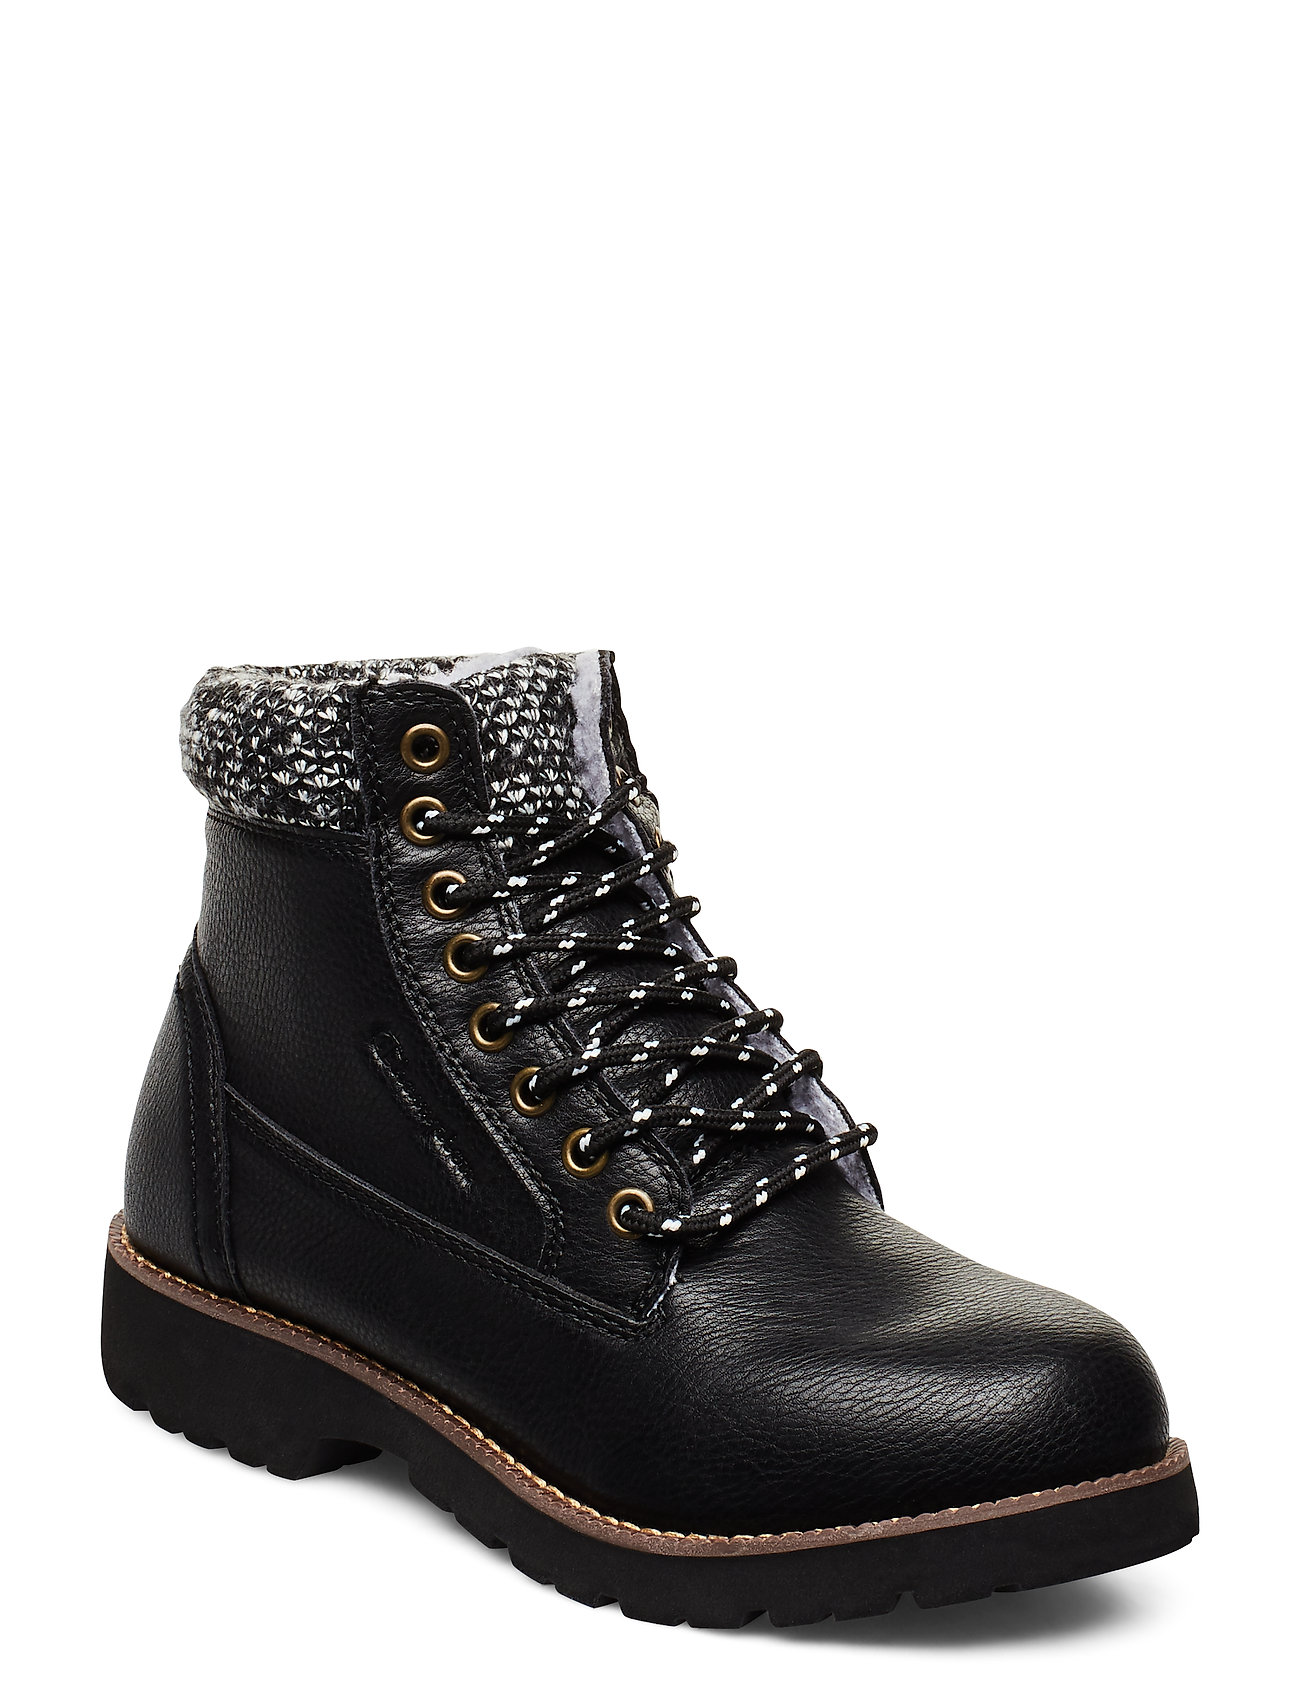 Image of High Cut Shoe Upstate Shoes Boots Ankle Boots Ankle Boot - Flat Sort Champion (3374003579)